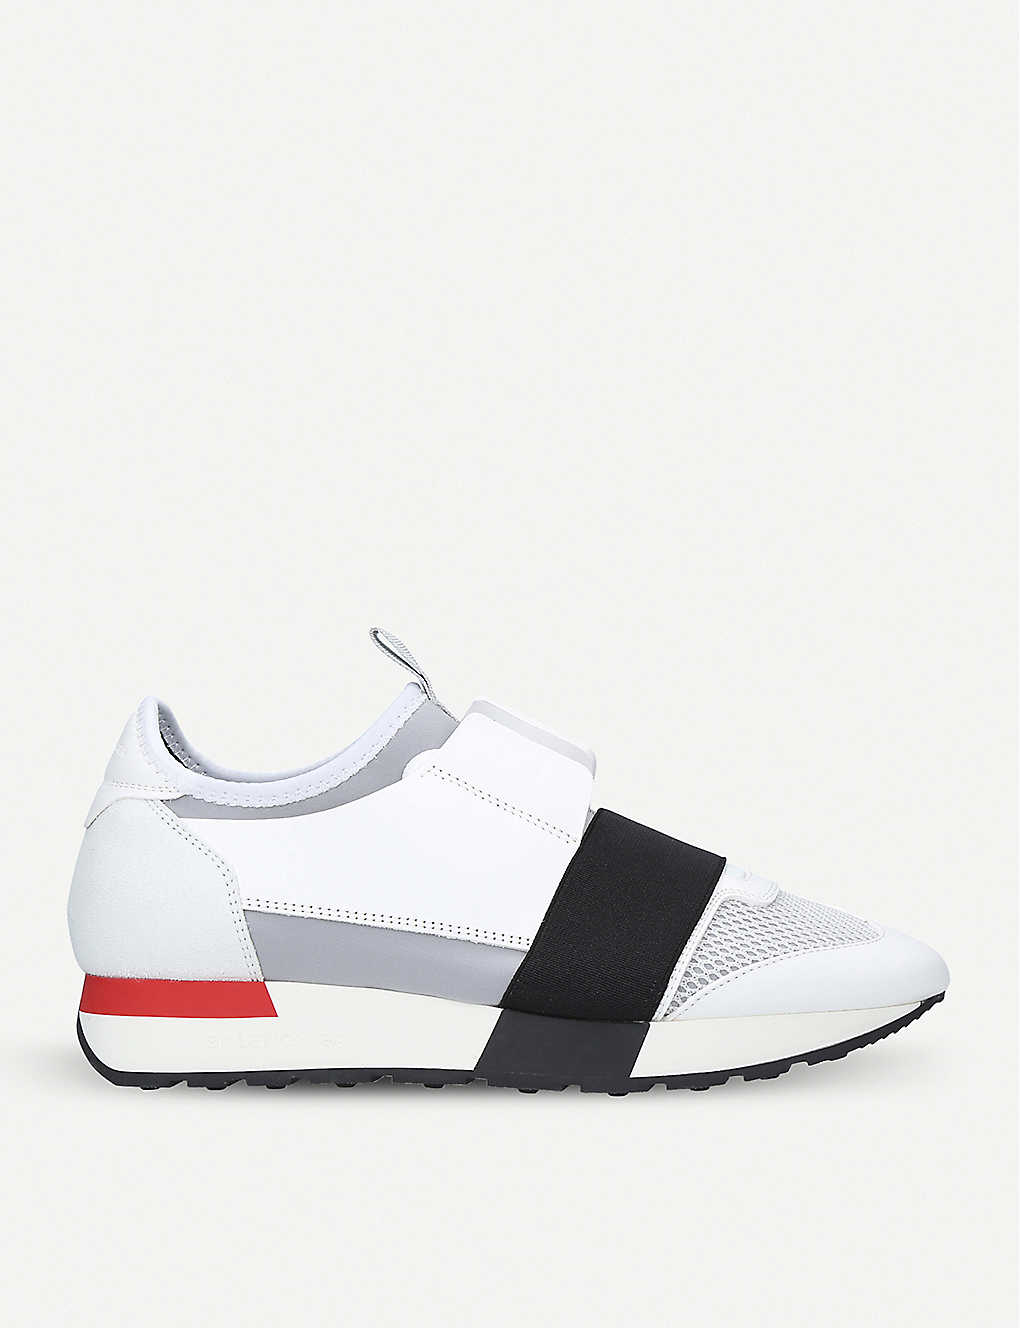 Balenciaga Shoes Race Runners mesh, leather and knitted low-top trainers